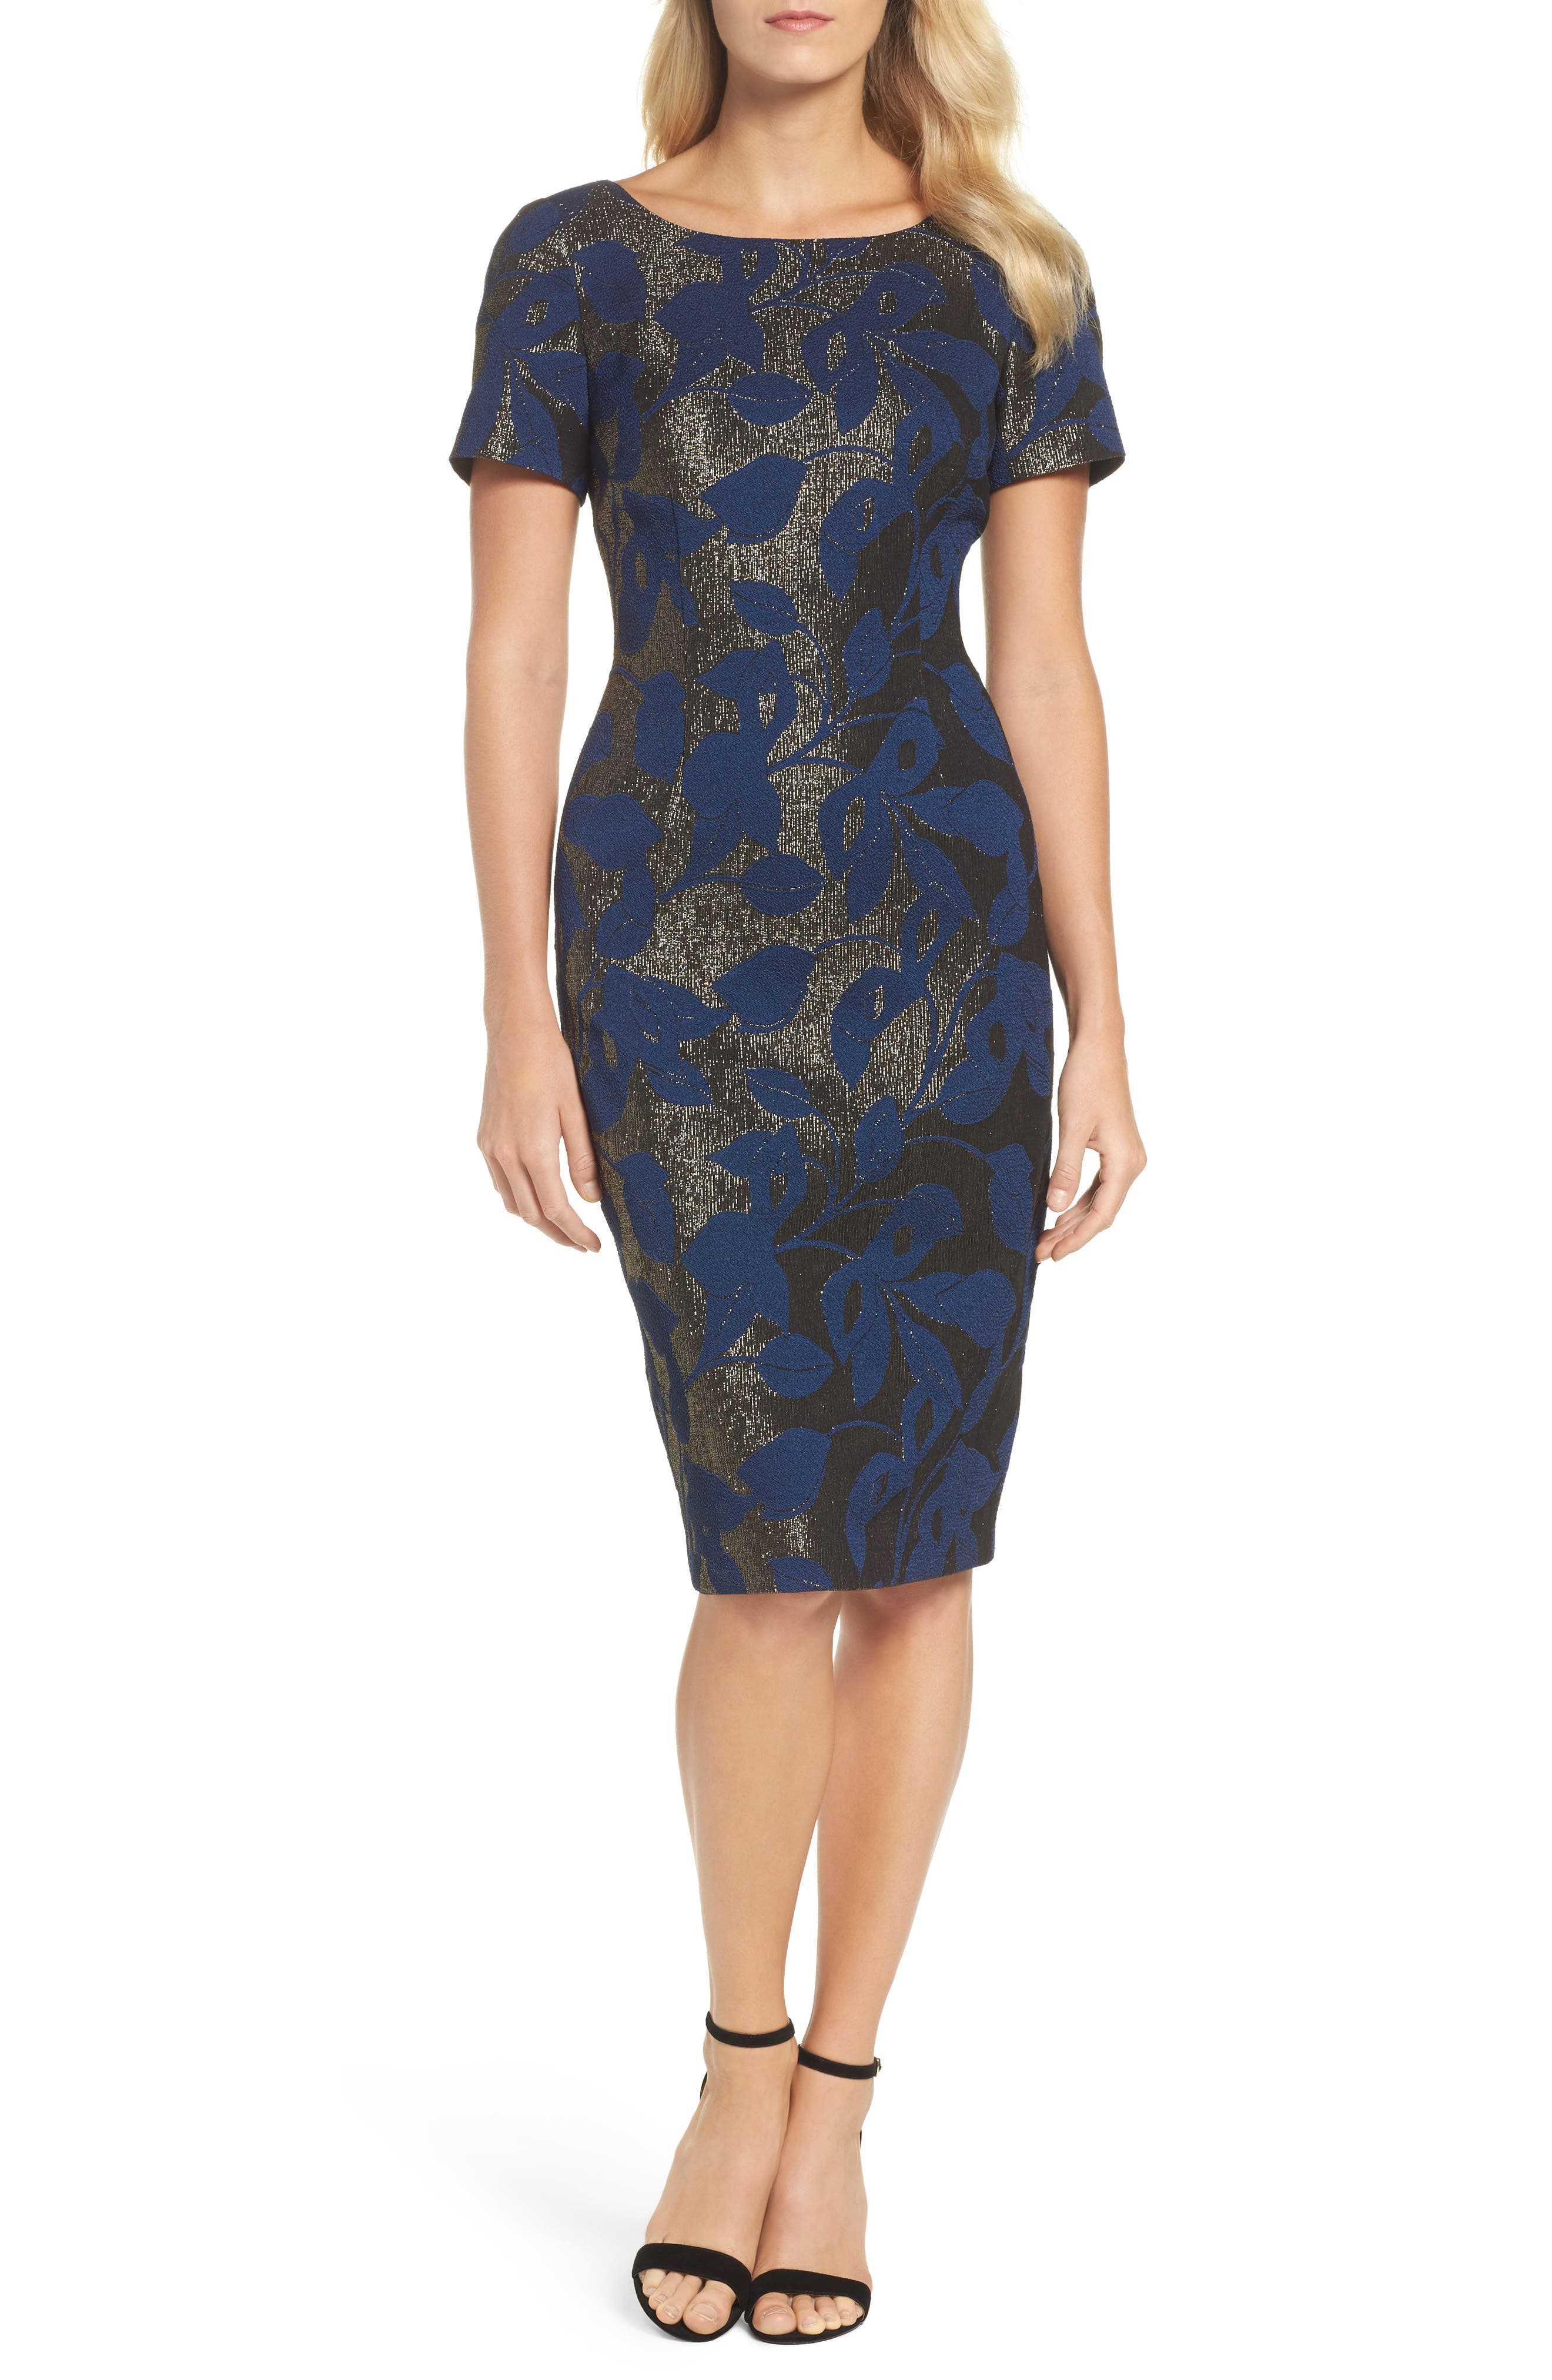 Main Image - Adrianna Papell Metallic Jacquard Sheath Dress